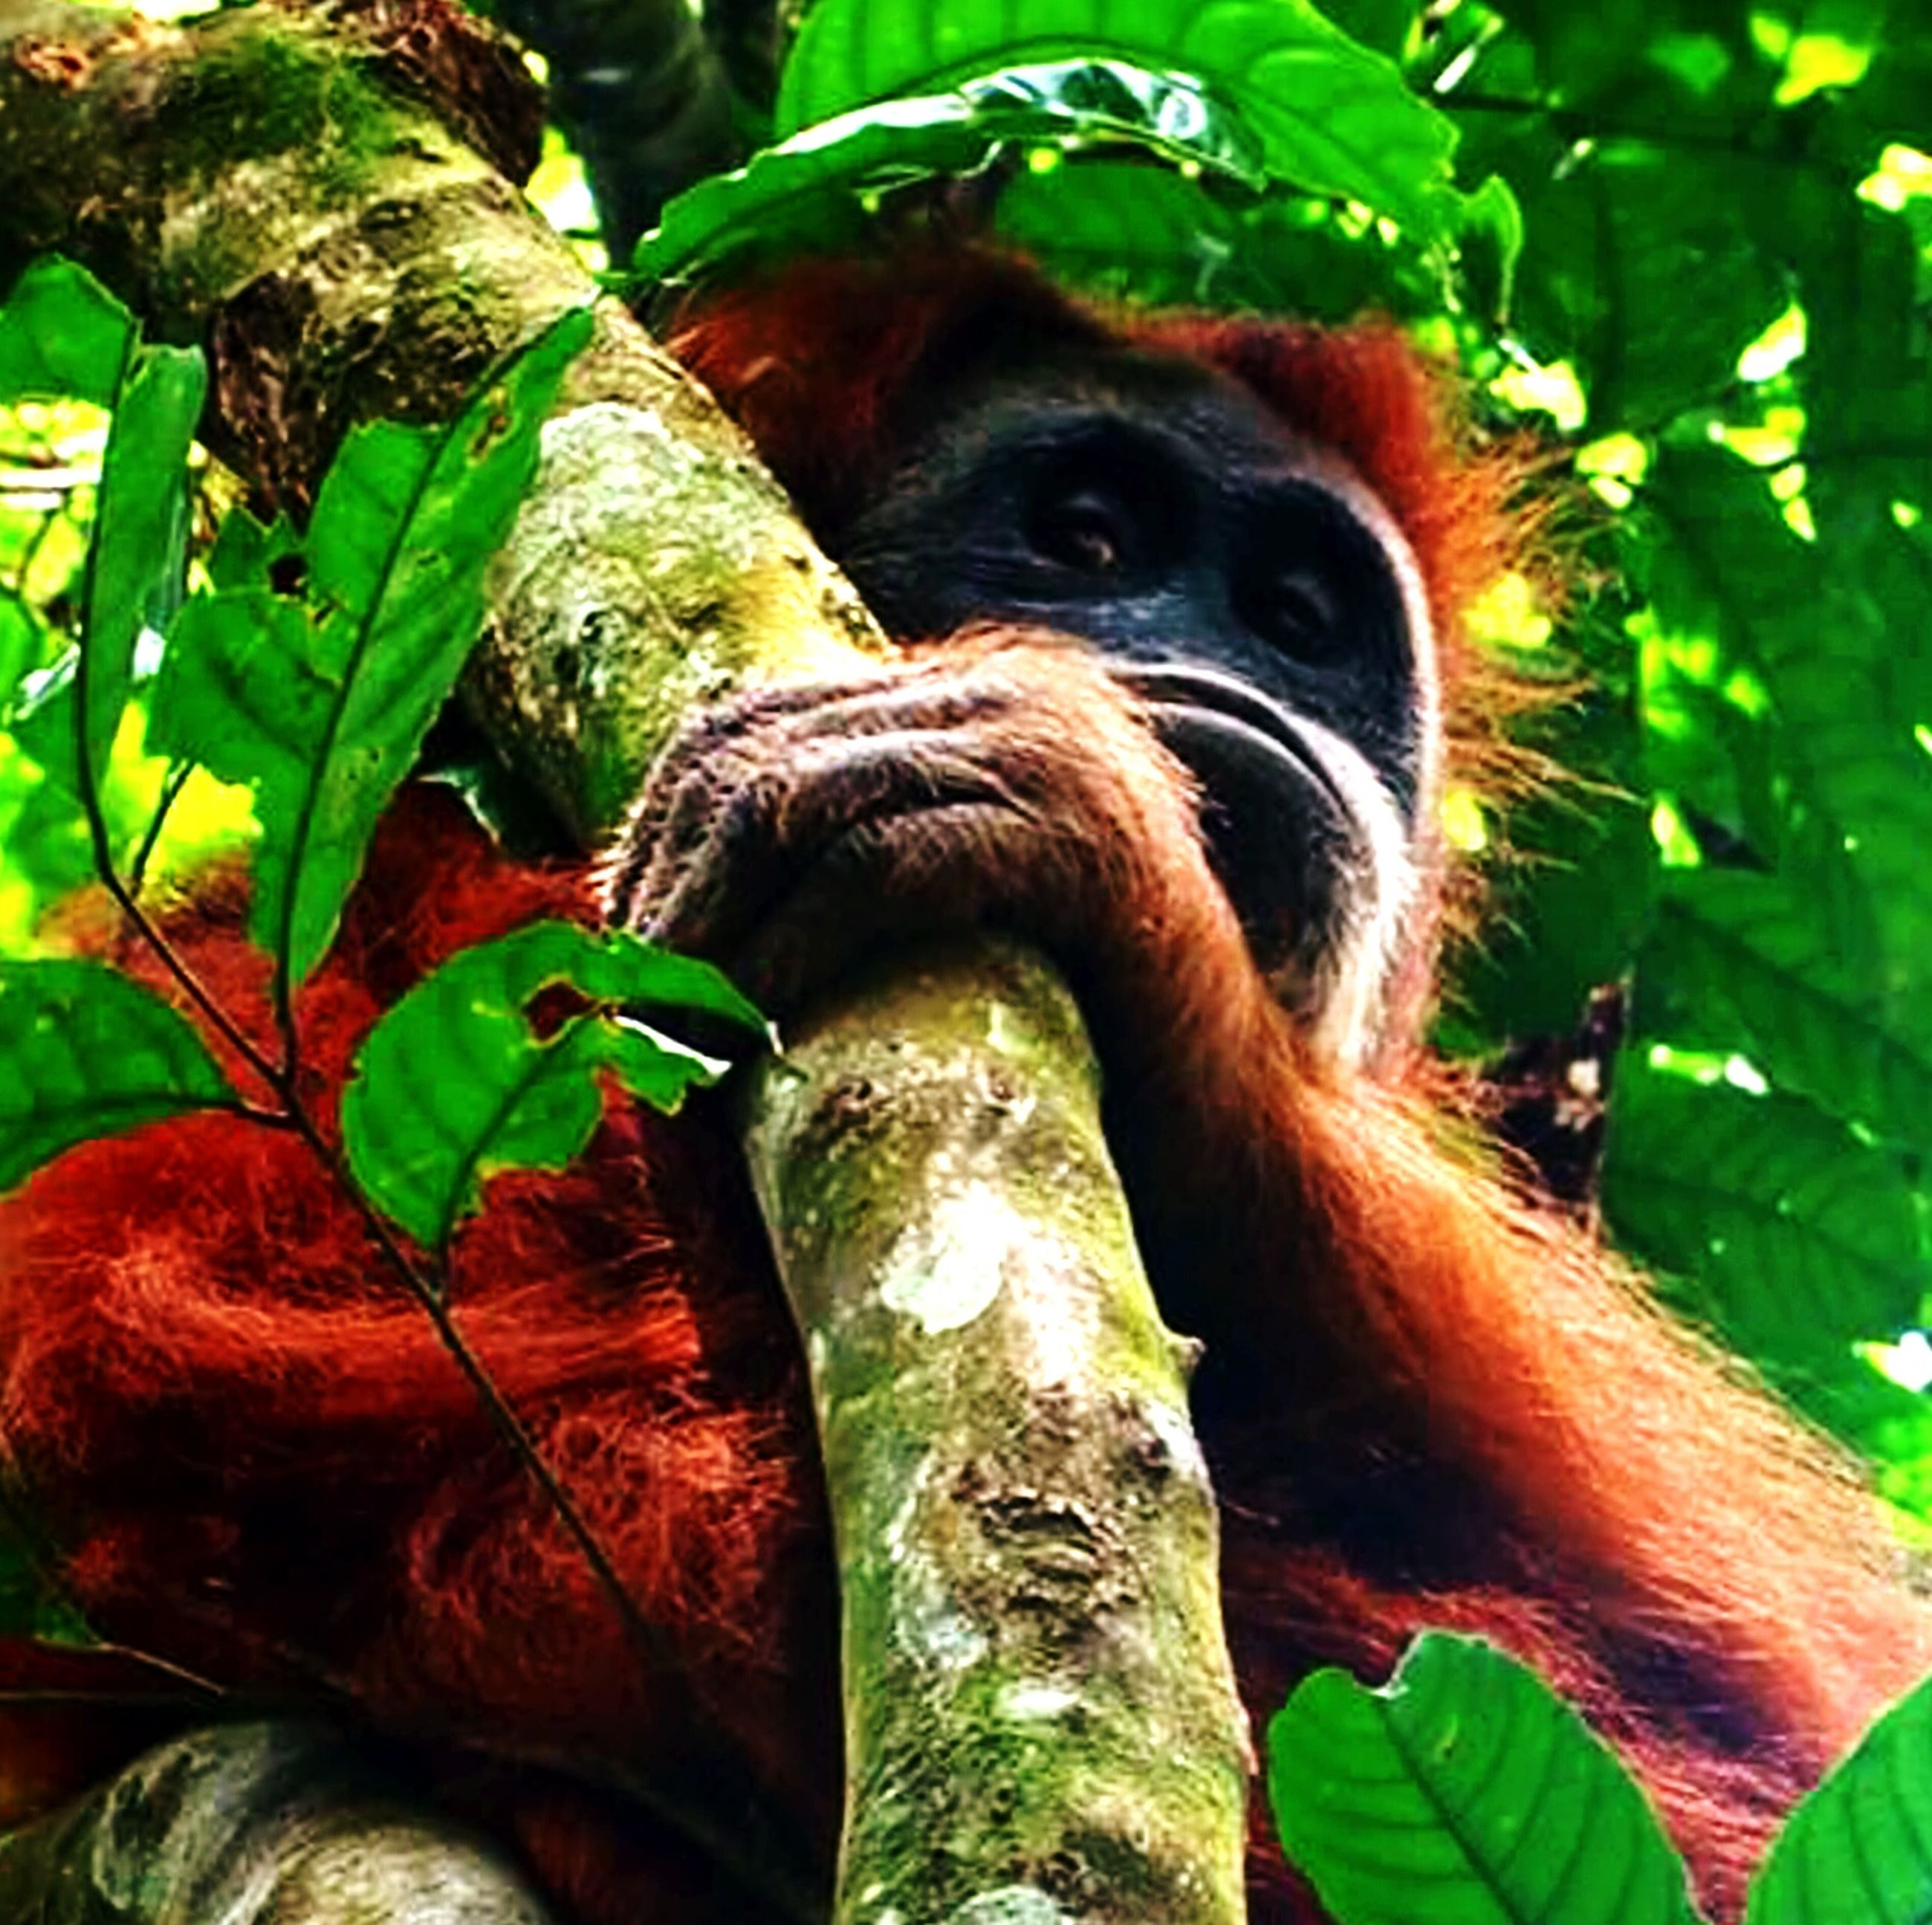 animal themes, one animal, leaf, mammal, tree, close-up, green color, wildlife, plant, low angle view, branch, sitting, growth, monkey, nature, animals in the wild, outdoors, no people, day, focus on foreground